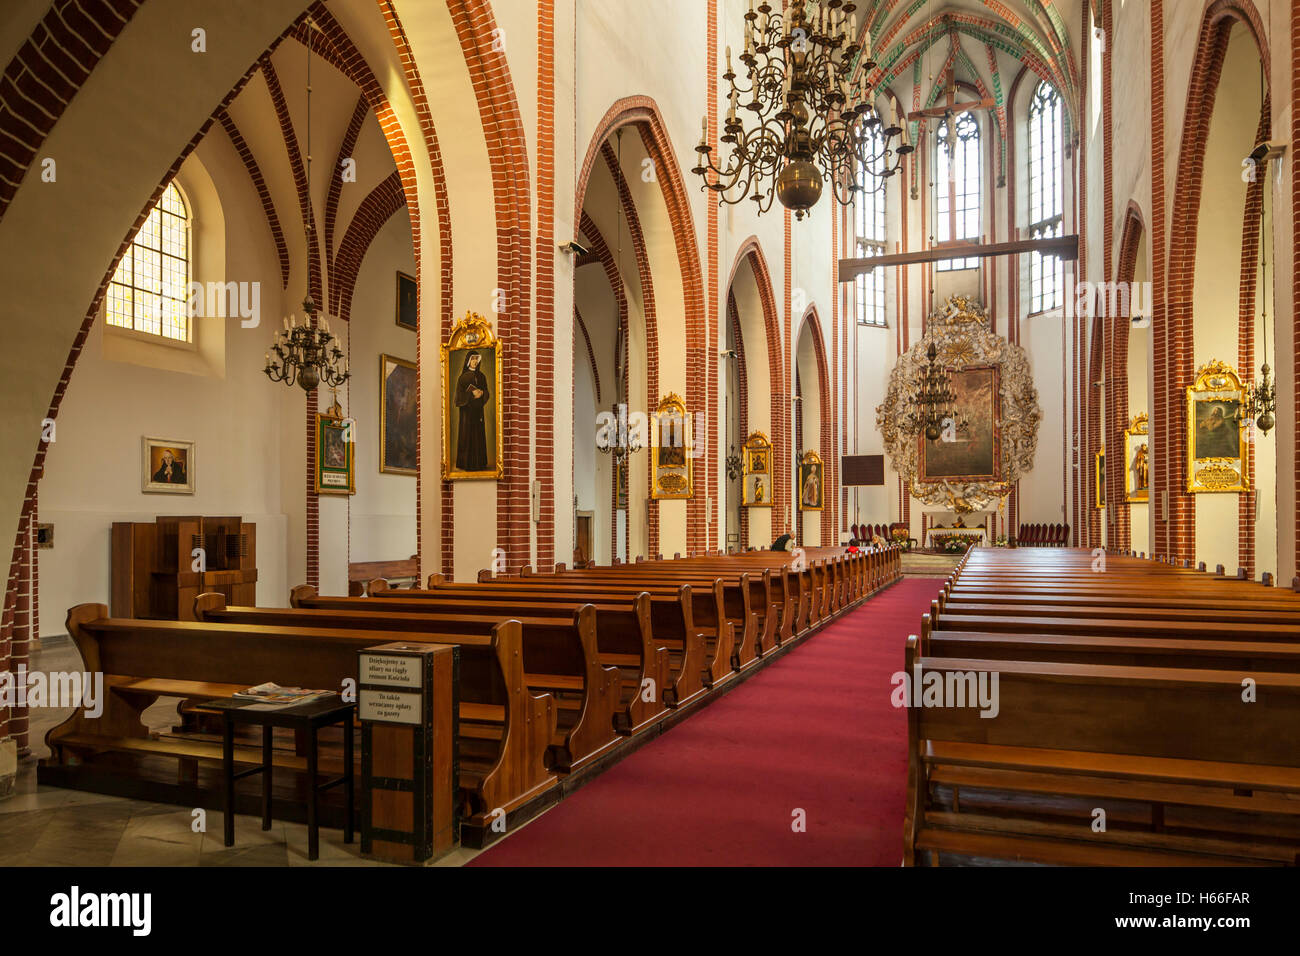 Interior of Corpus Christi church in Wroclaw, Poland. - Stock Image